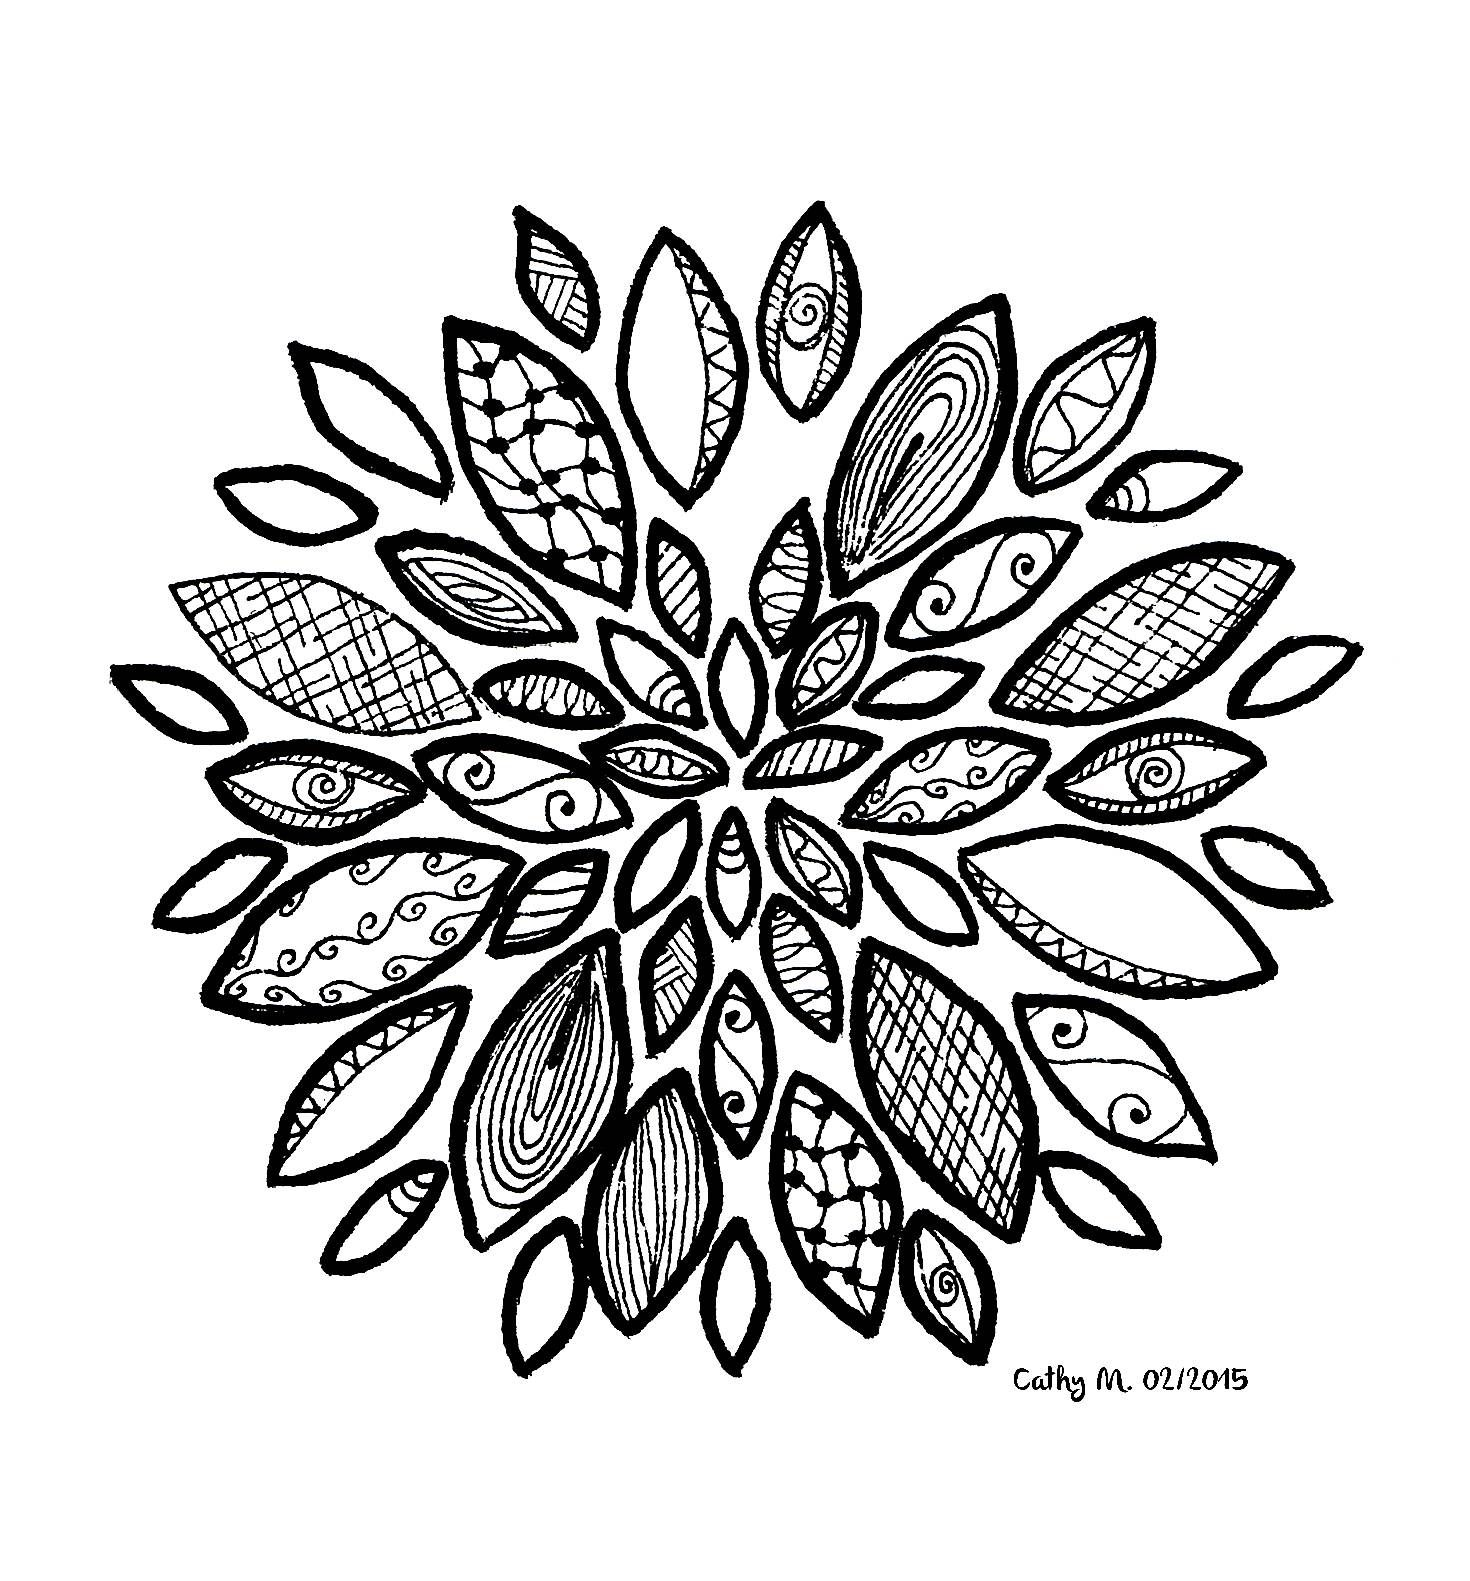 free coloring page coloring zentangle by cathym 20 imaginary flower - Zentangle Coloring Pages For Adults